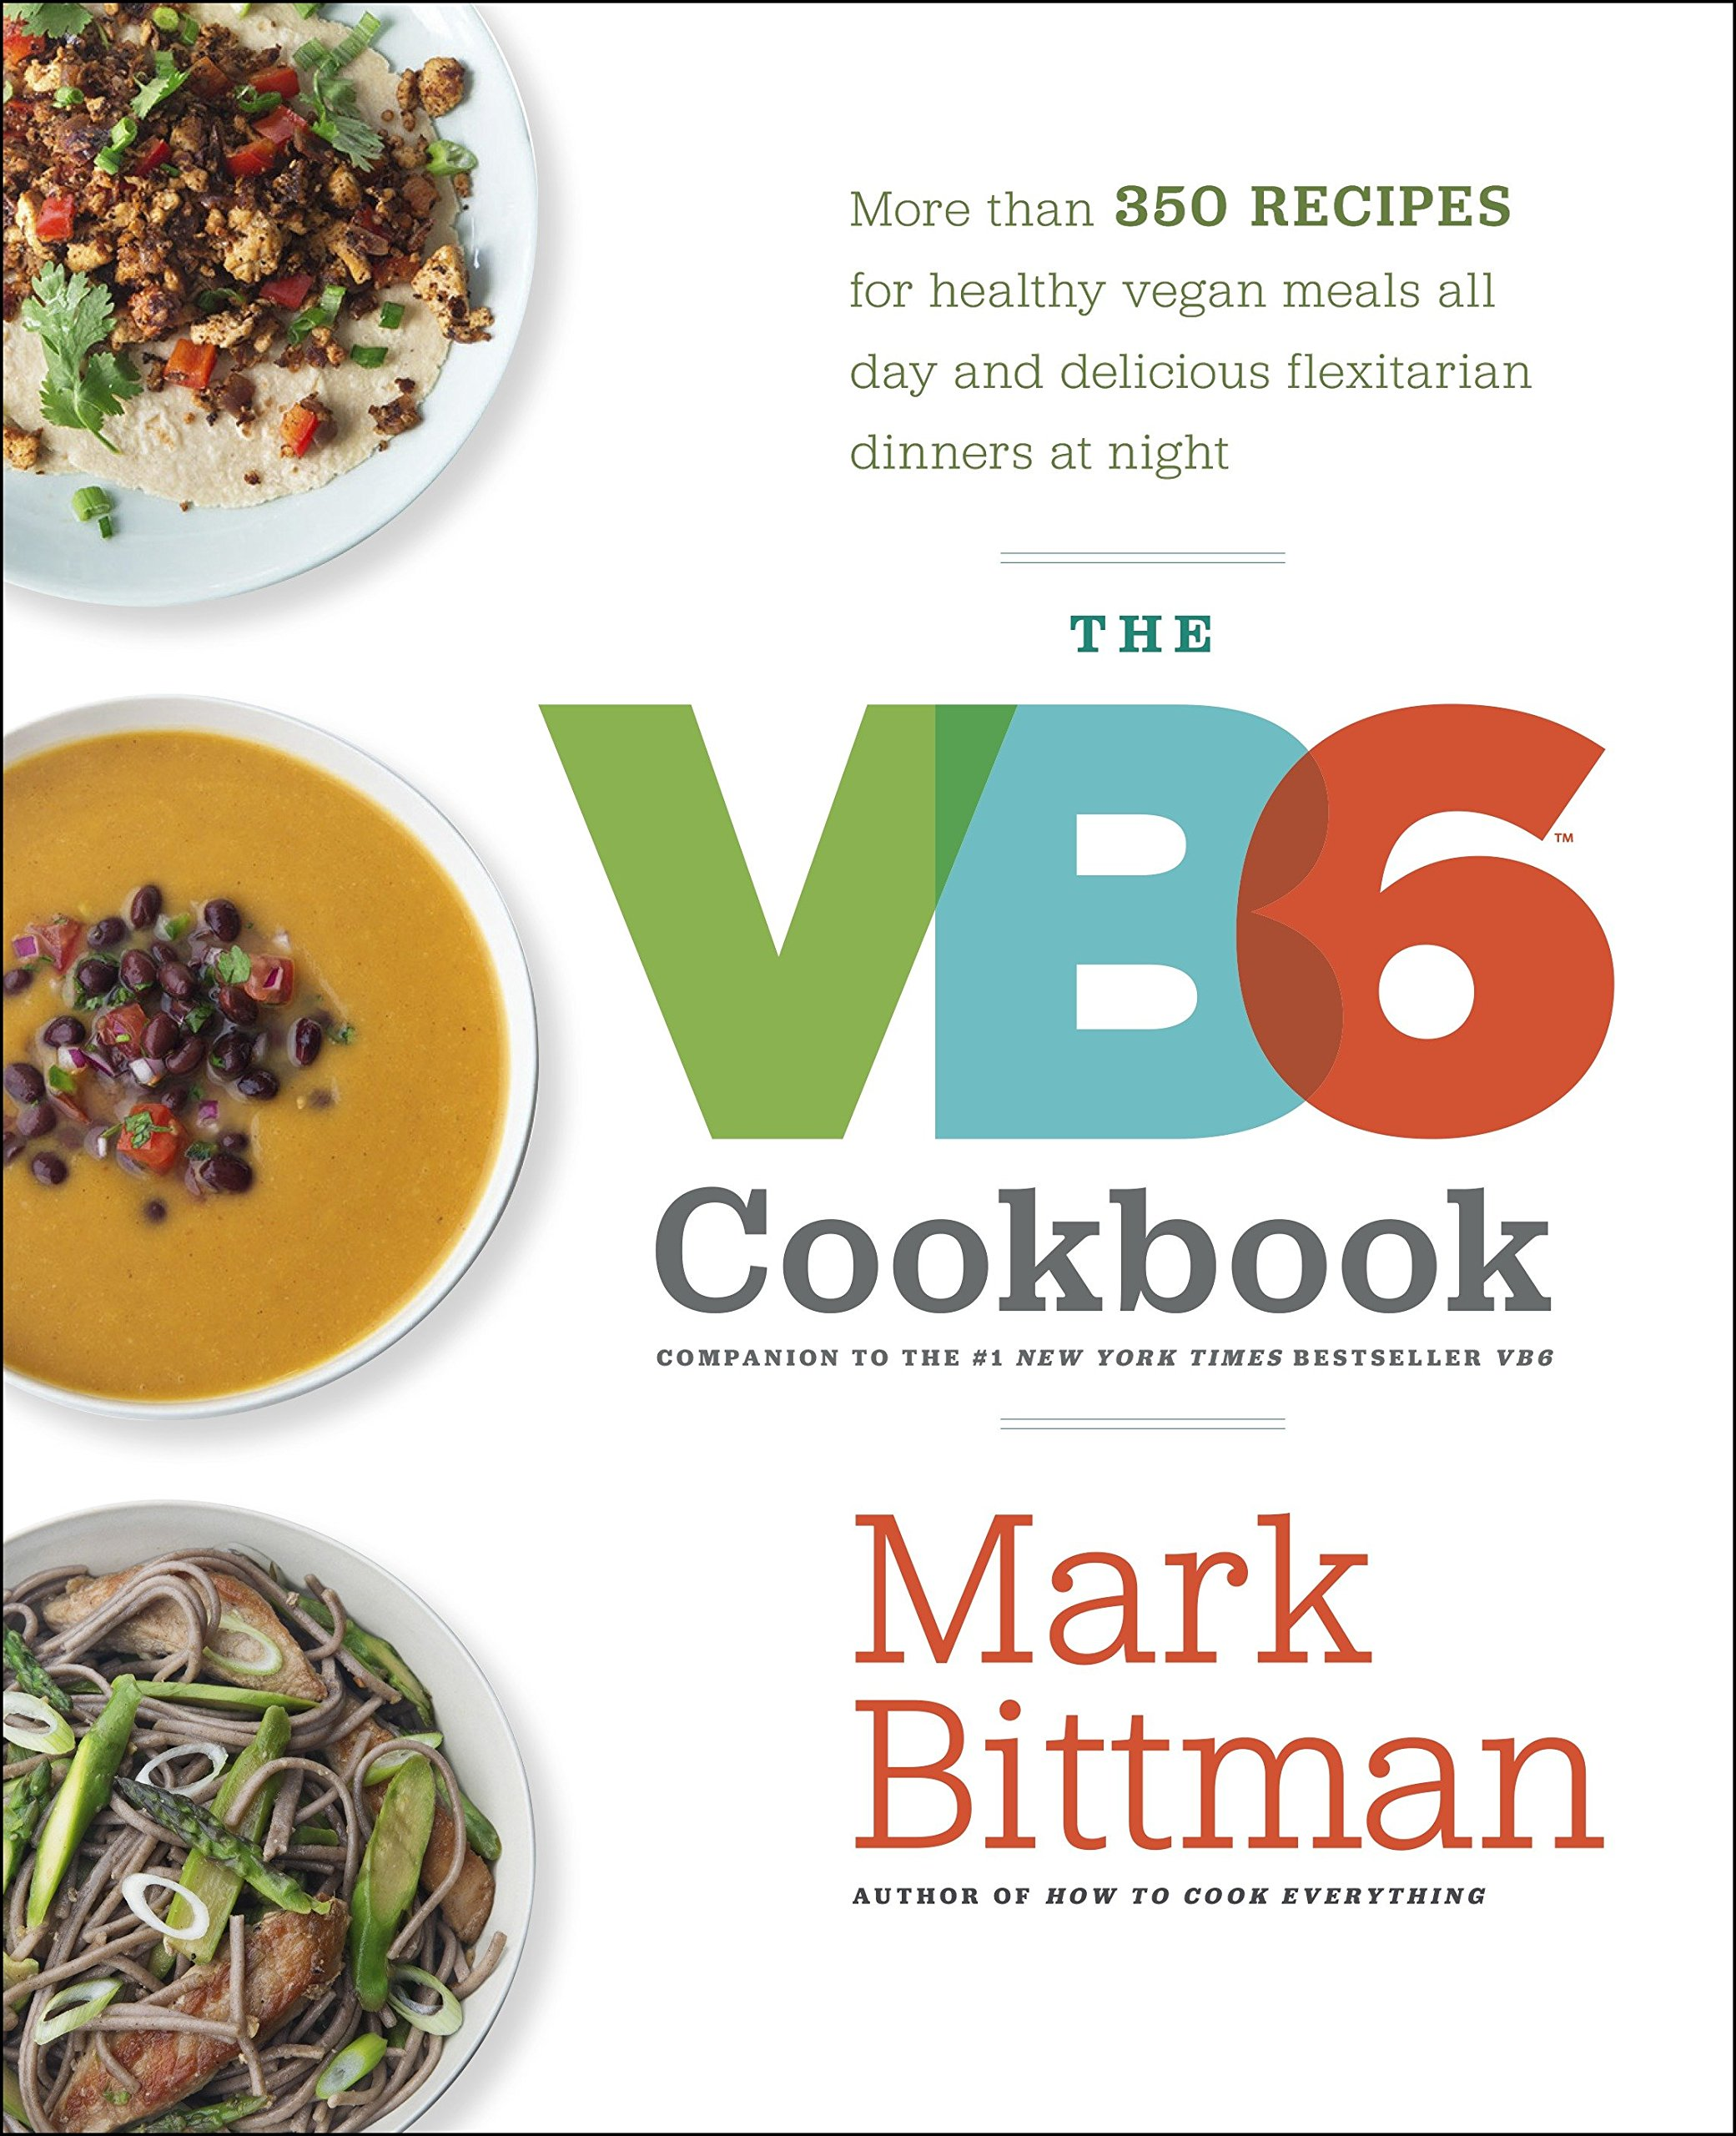 Download The VB6 Cookbook: More than 350 Recipes for Healthy Vegan Meals All Day and Delicious Flexitarian Dinners at Night PDF